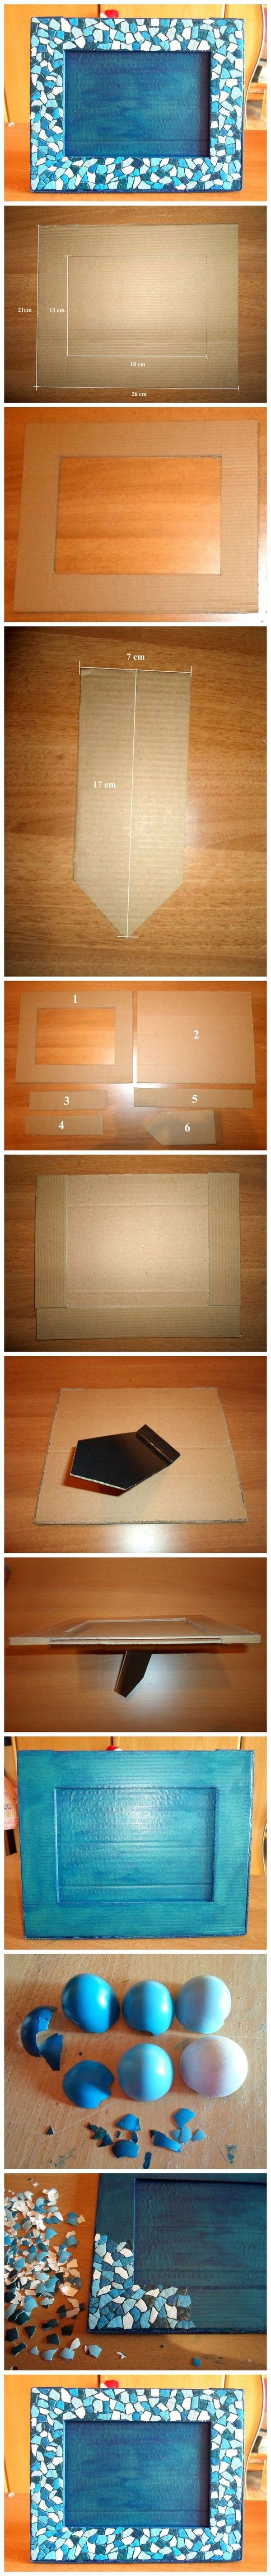 Corrugated production photo frame oh very nice, decorated with broken egg shell! Cardboard photo frame .. step by step carefully to make all sorts of surprises :)